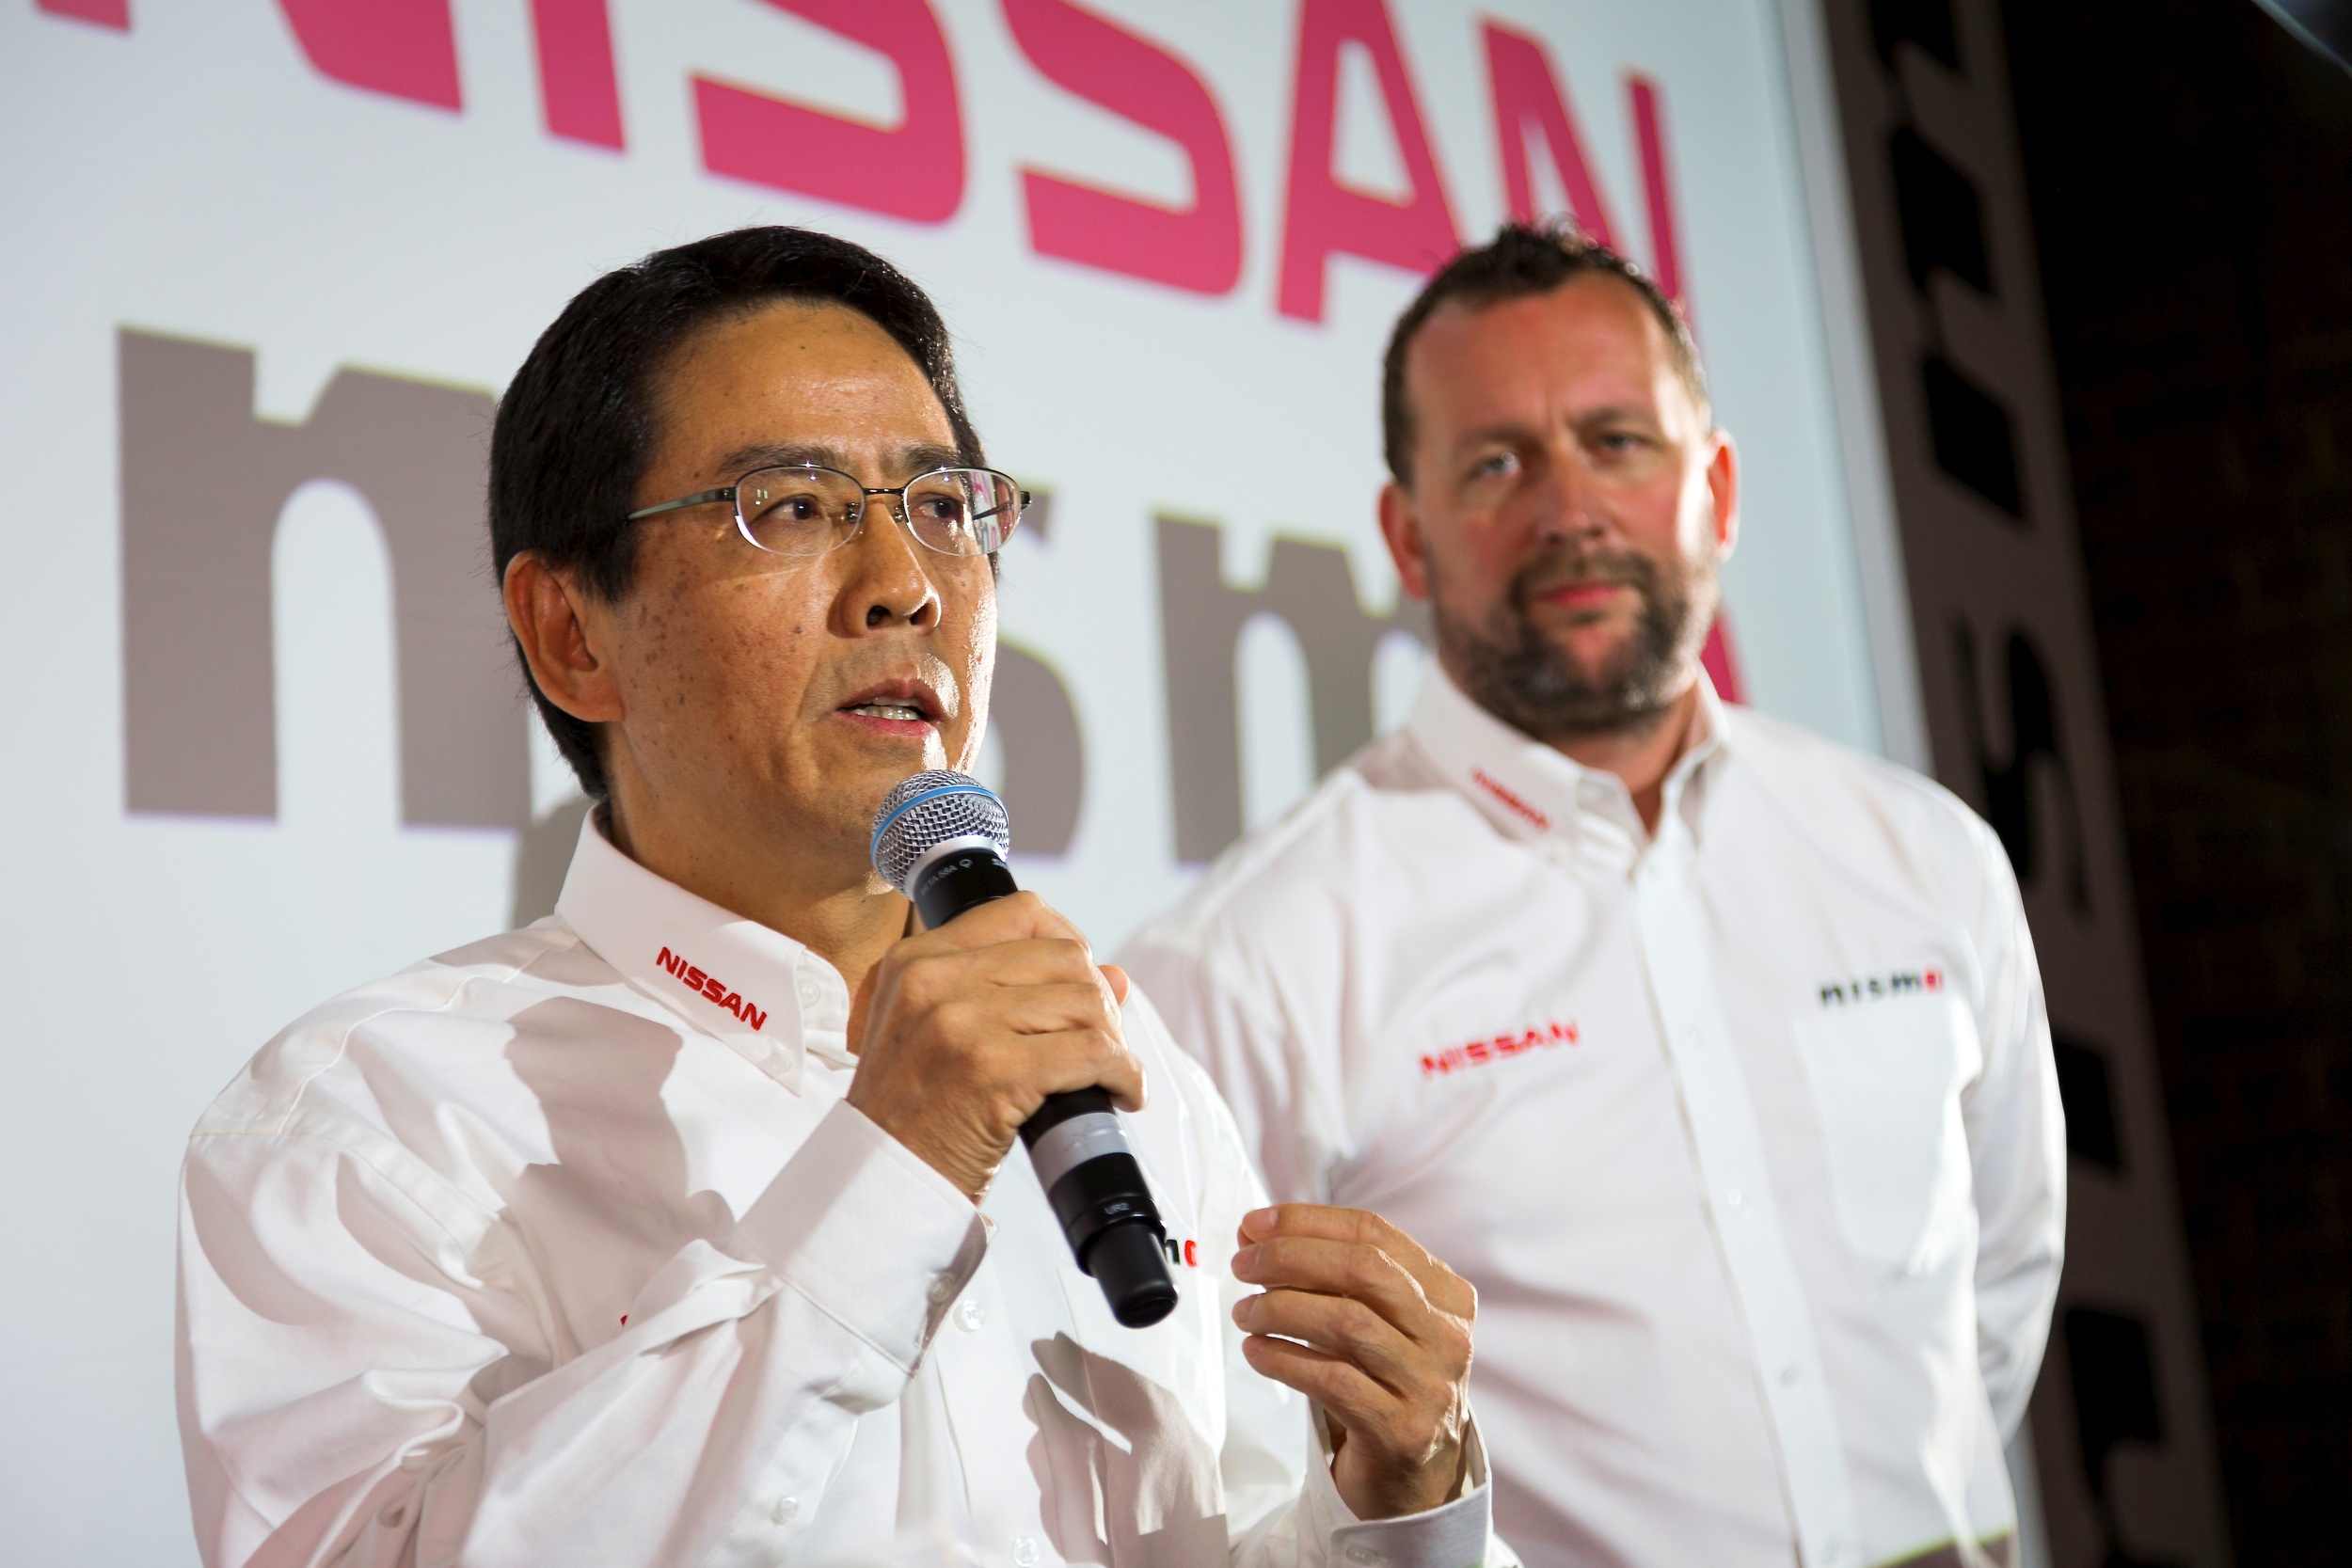 nissan_LMP1_launch_6.jpg